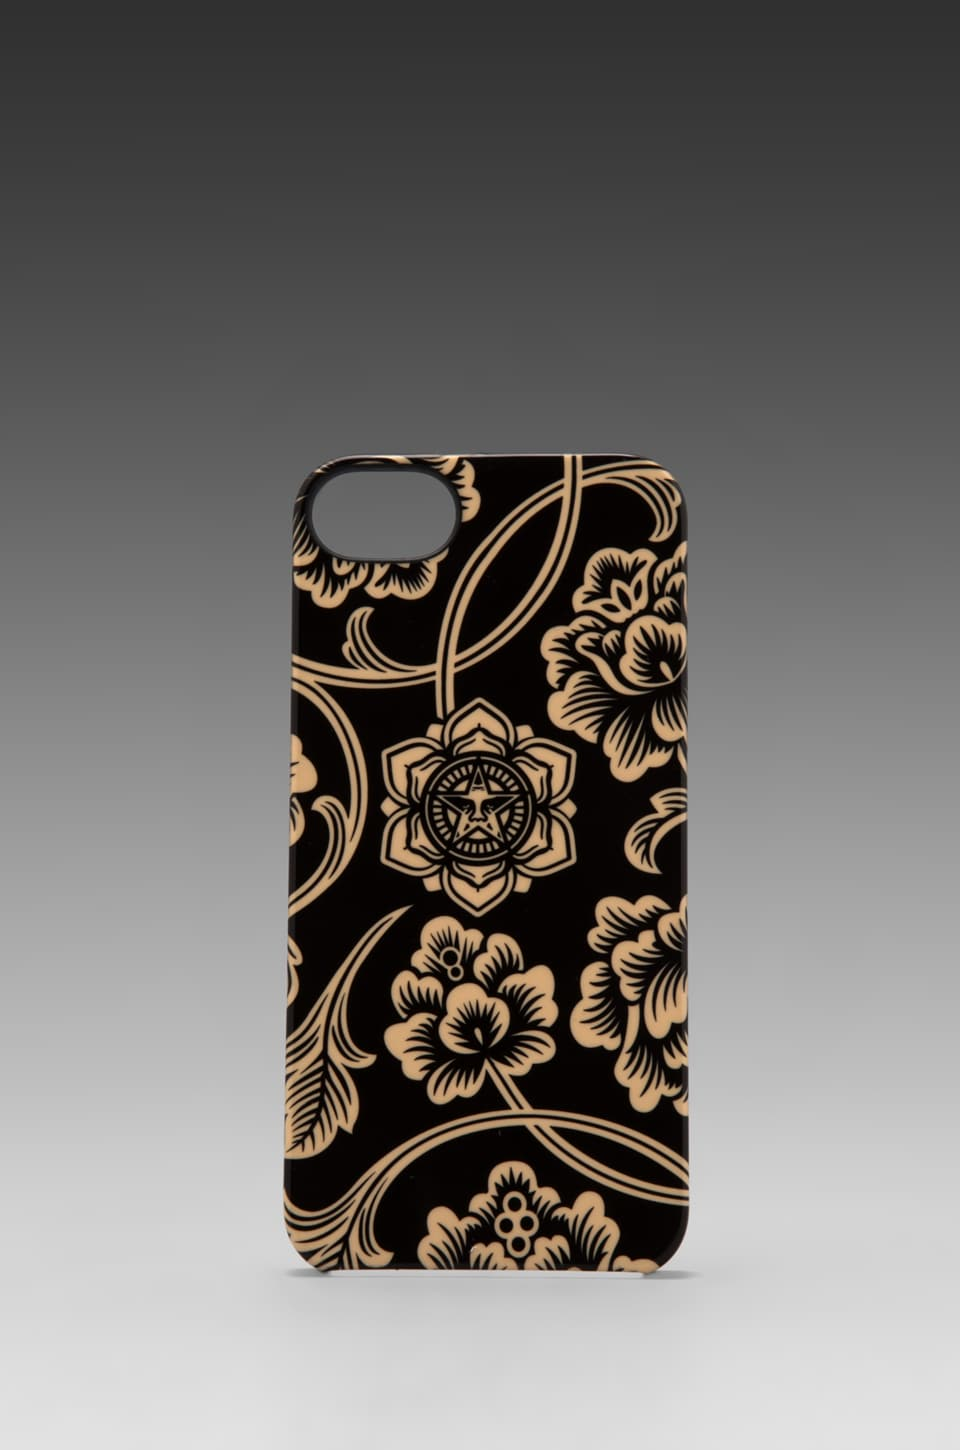 INCASE Shepard Fairey iPhone 5 Snap Case in Floral Vine